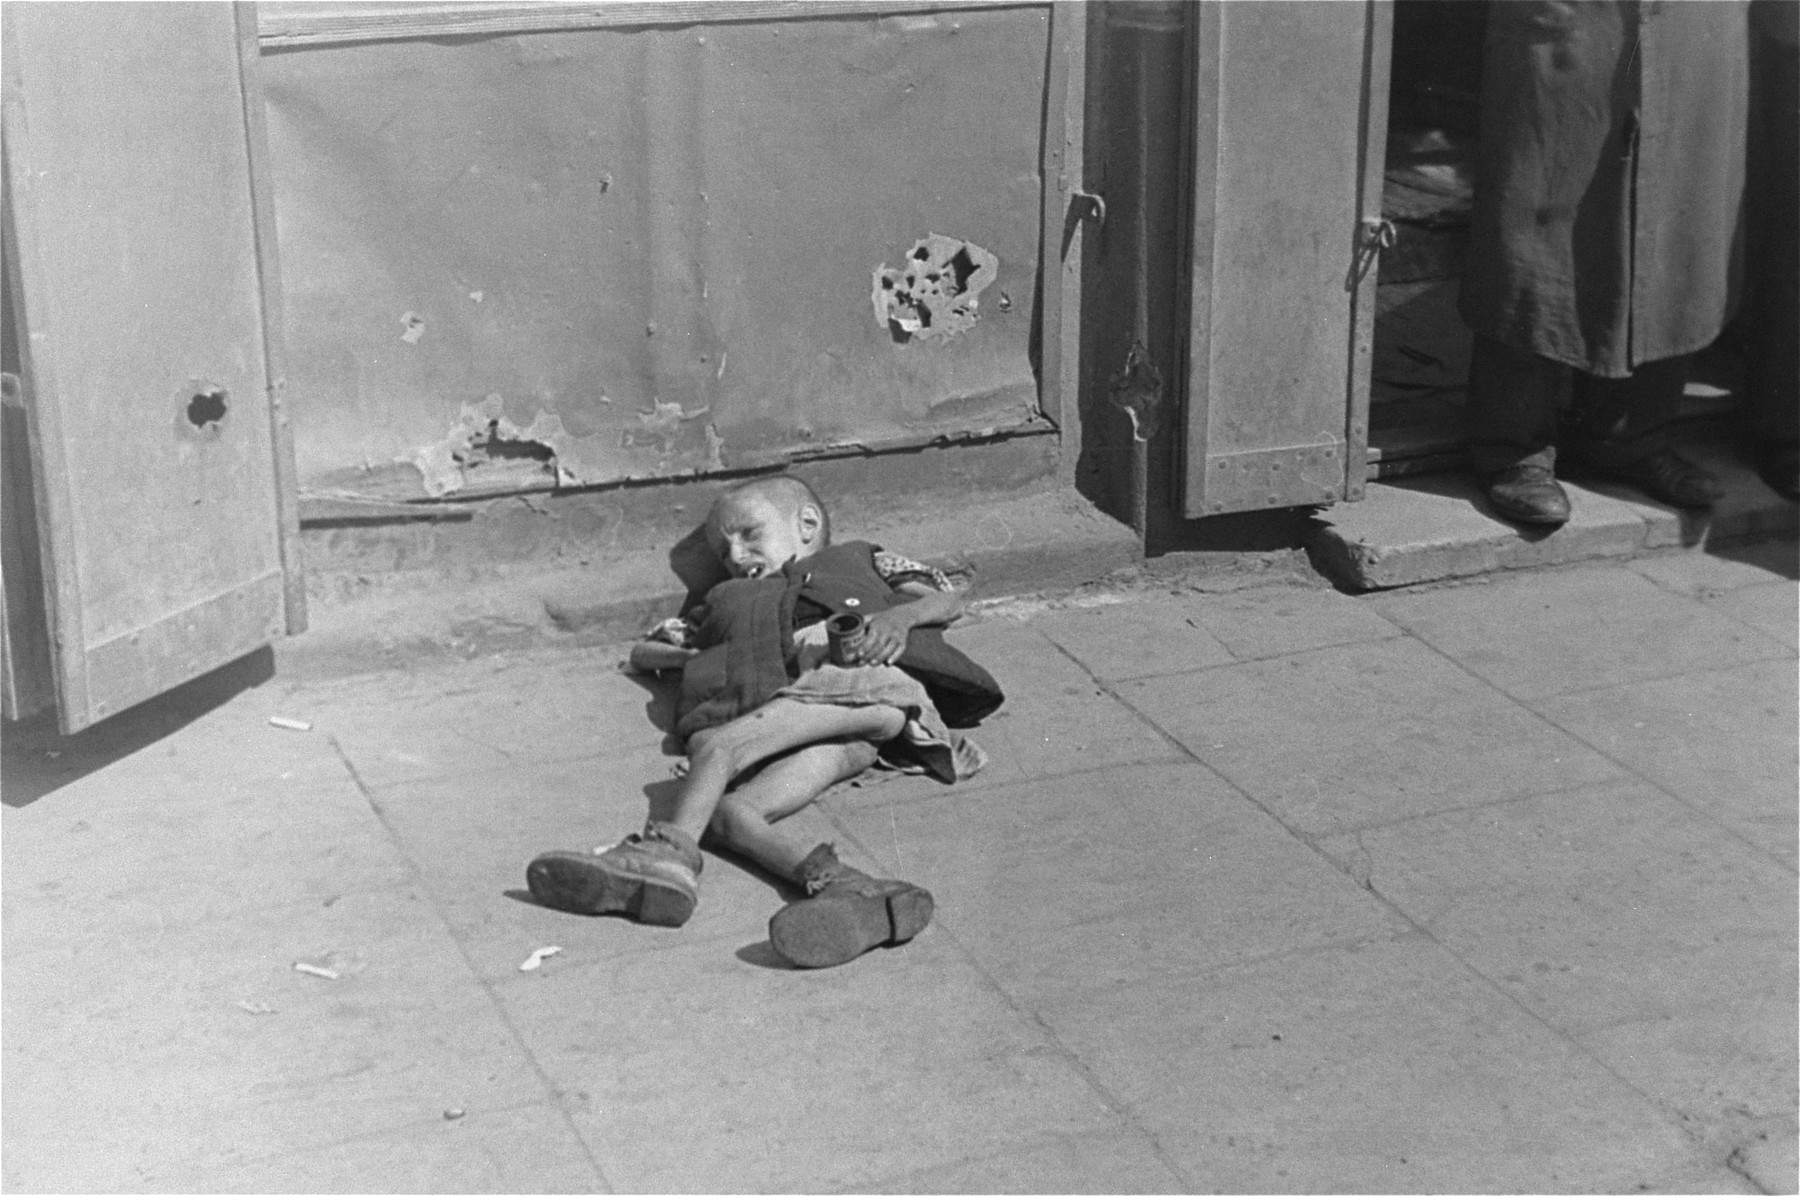 A destitute young boy lies on the pavement in the Warsaw ghetto holding a cup in his hand.